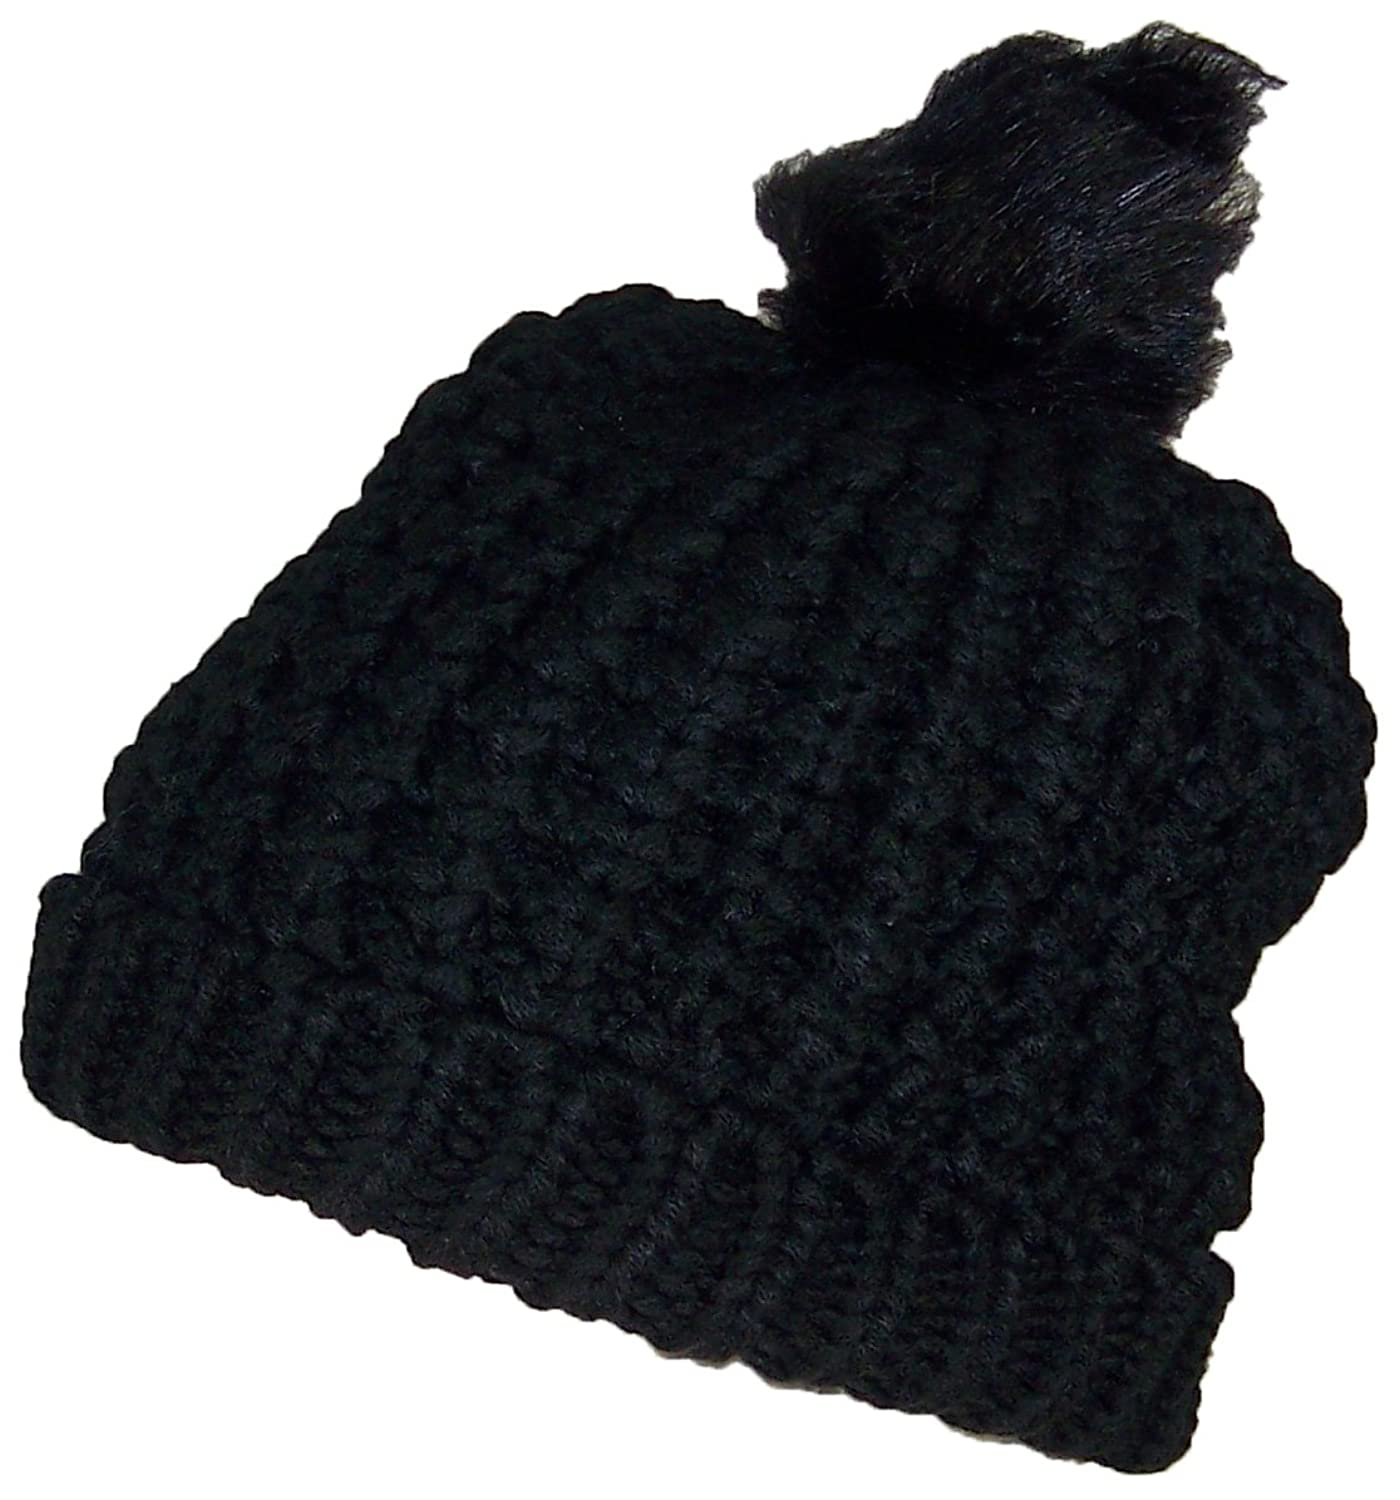 Angela & William Womens Rib Knit Hat W/Soft Lining & Pom Pom (One Size) - Black